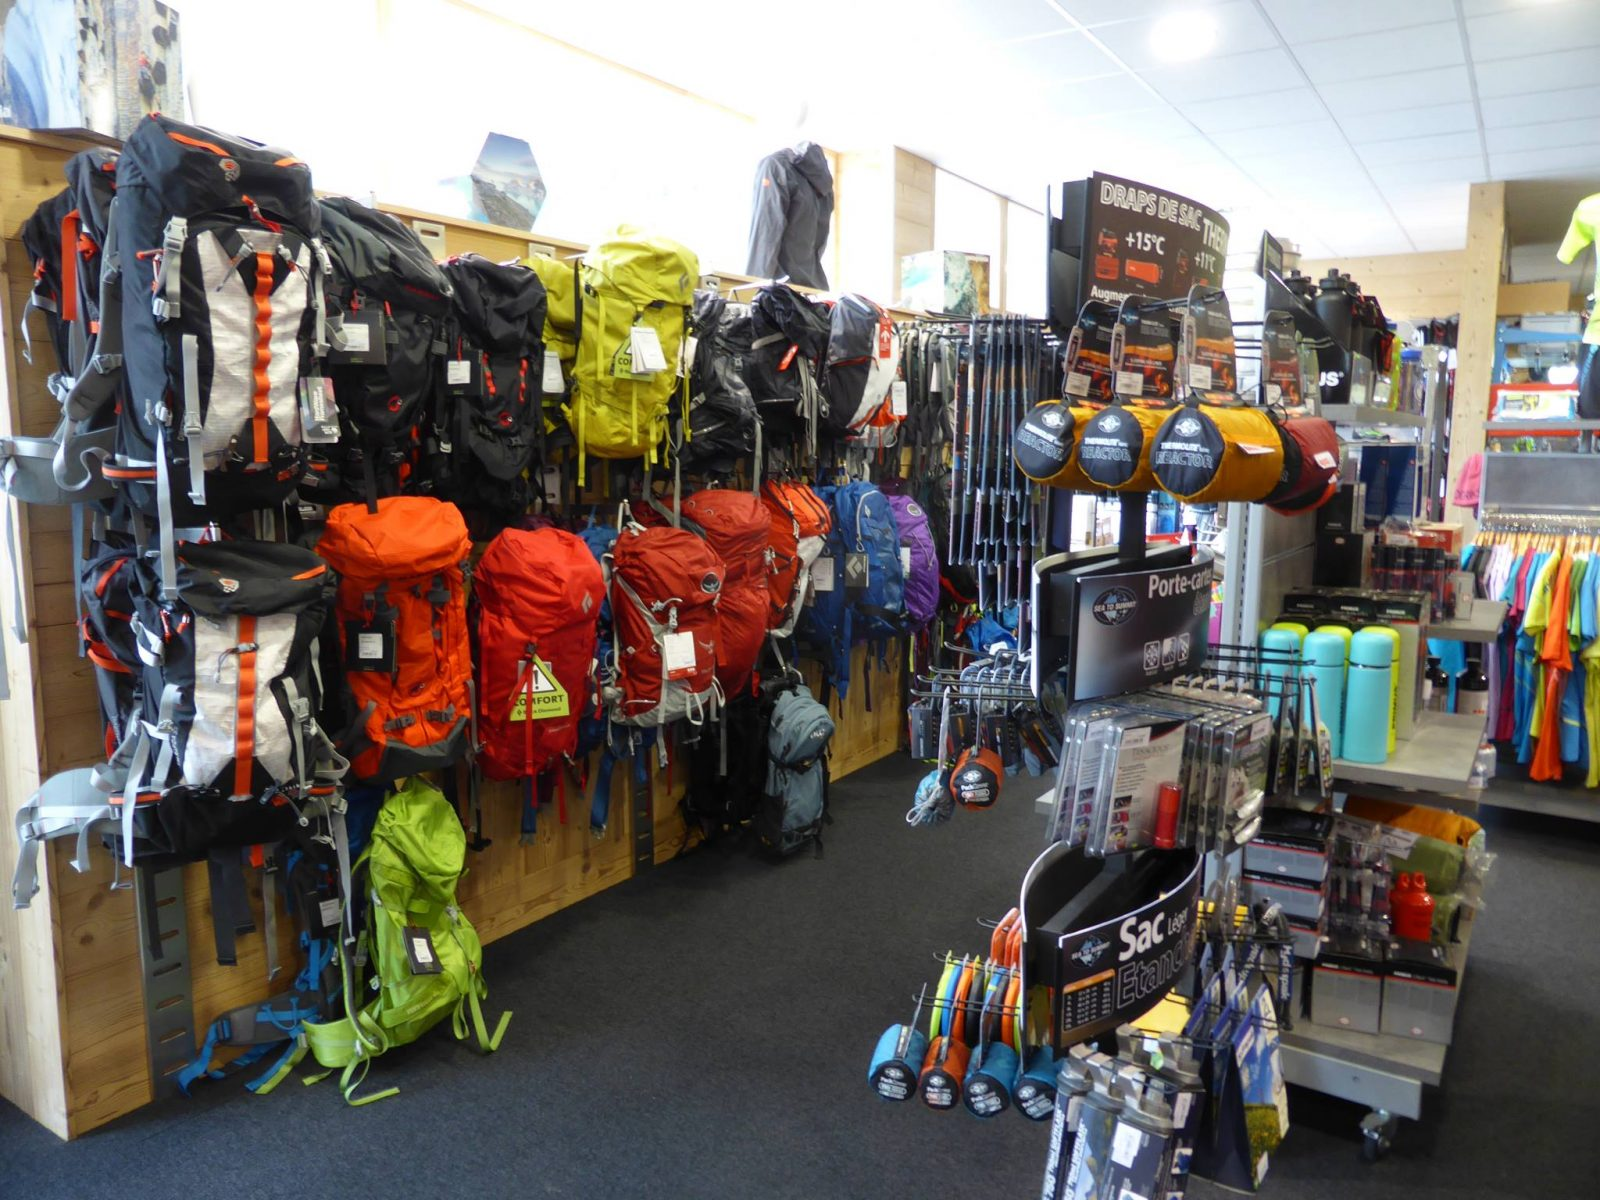 Magasin de sports – Objectif Meije (4)